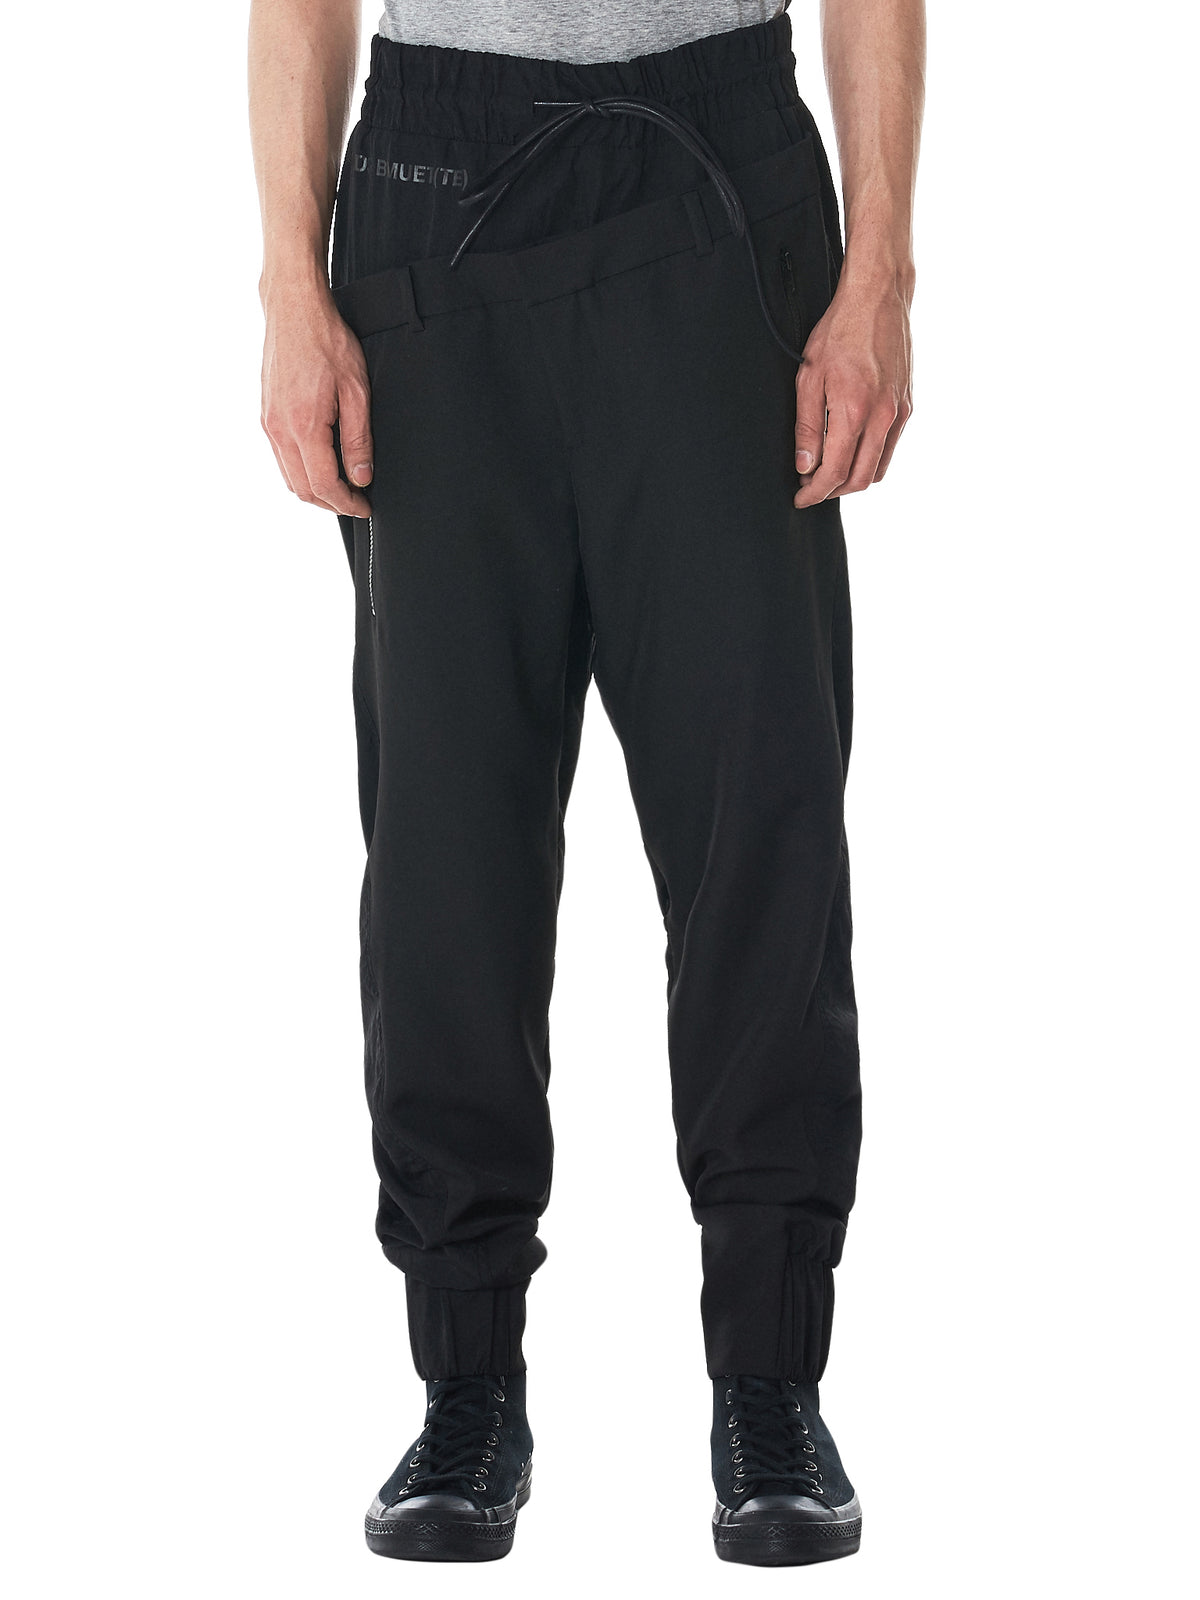 Double Waist Elasticized Trousers (18AB1SBMTR-02-BLACK)